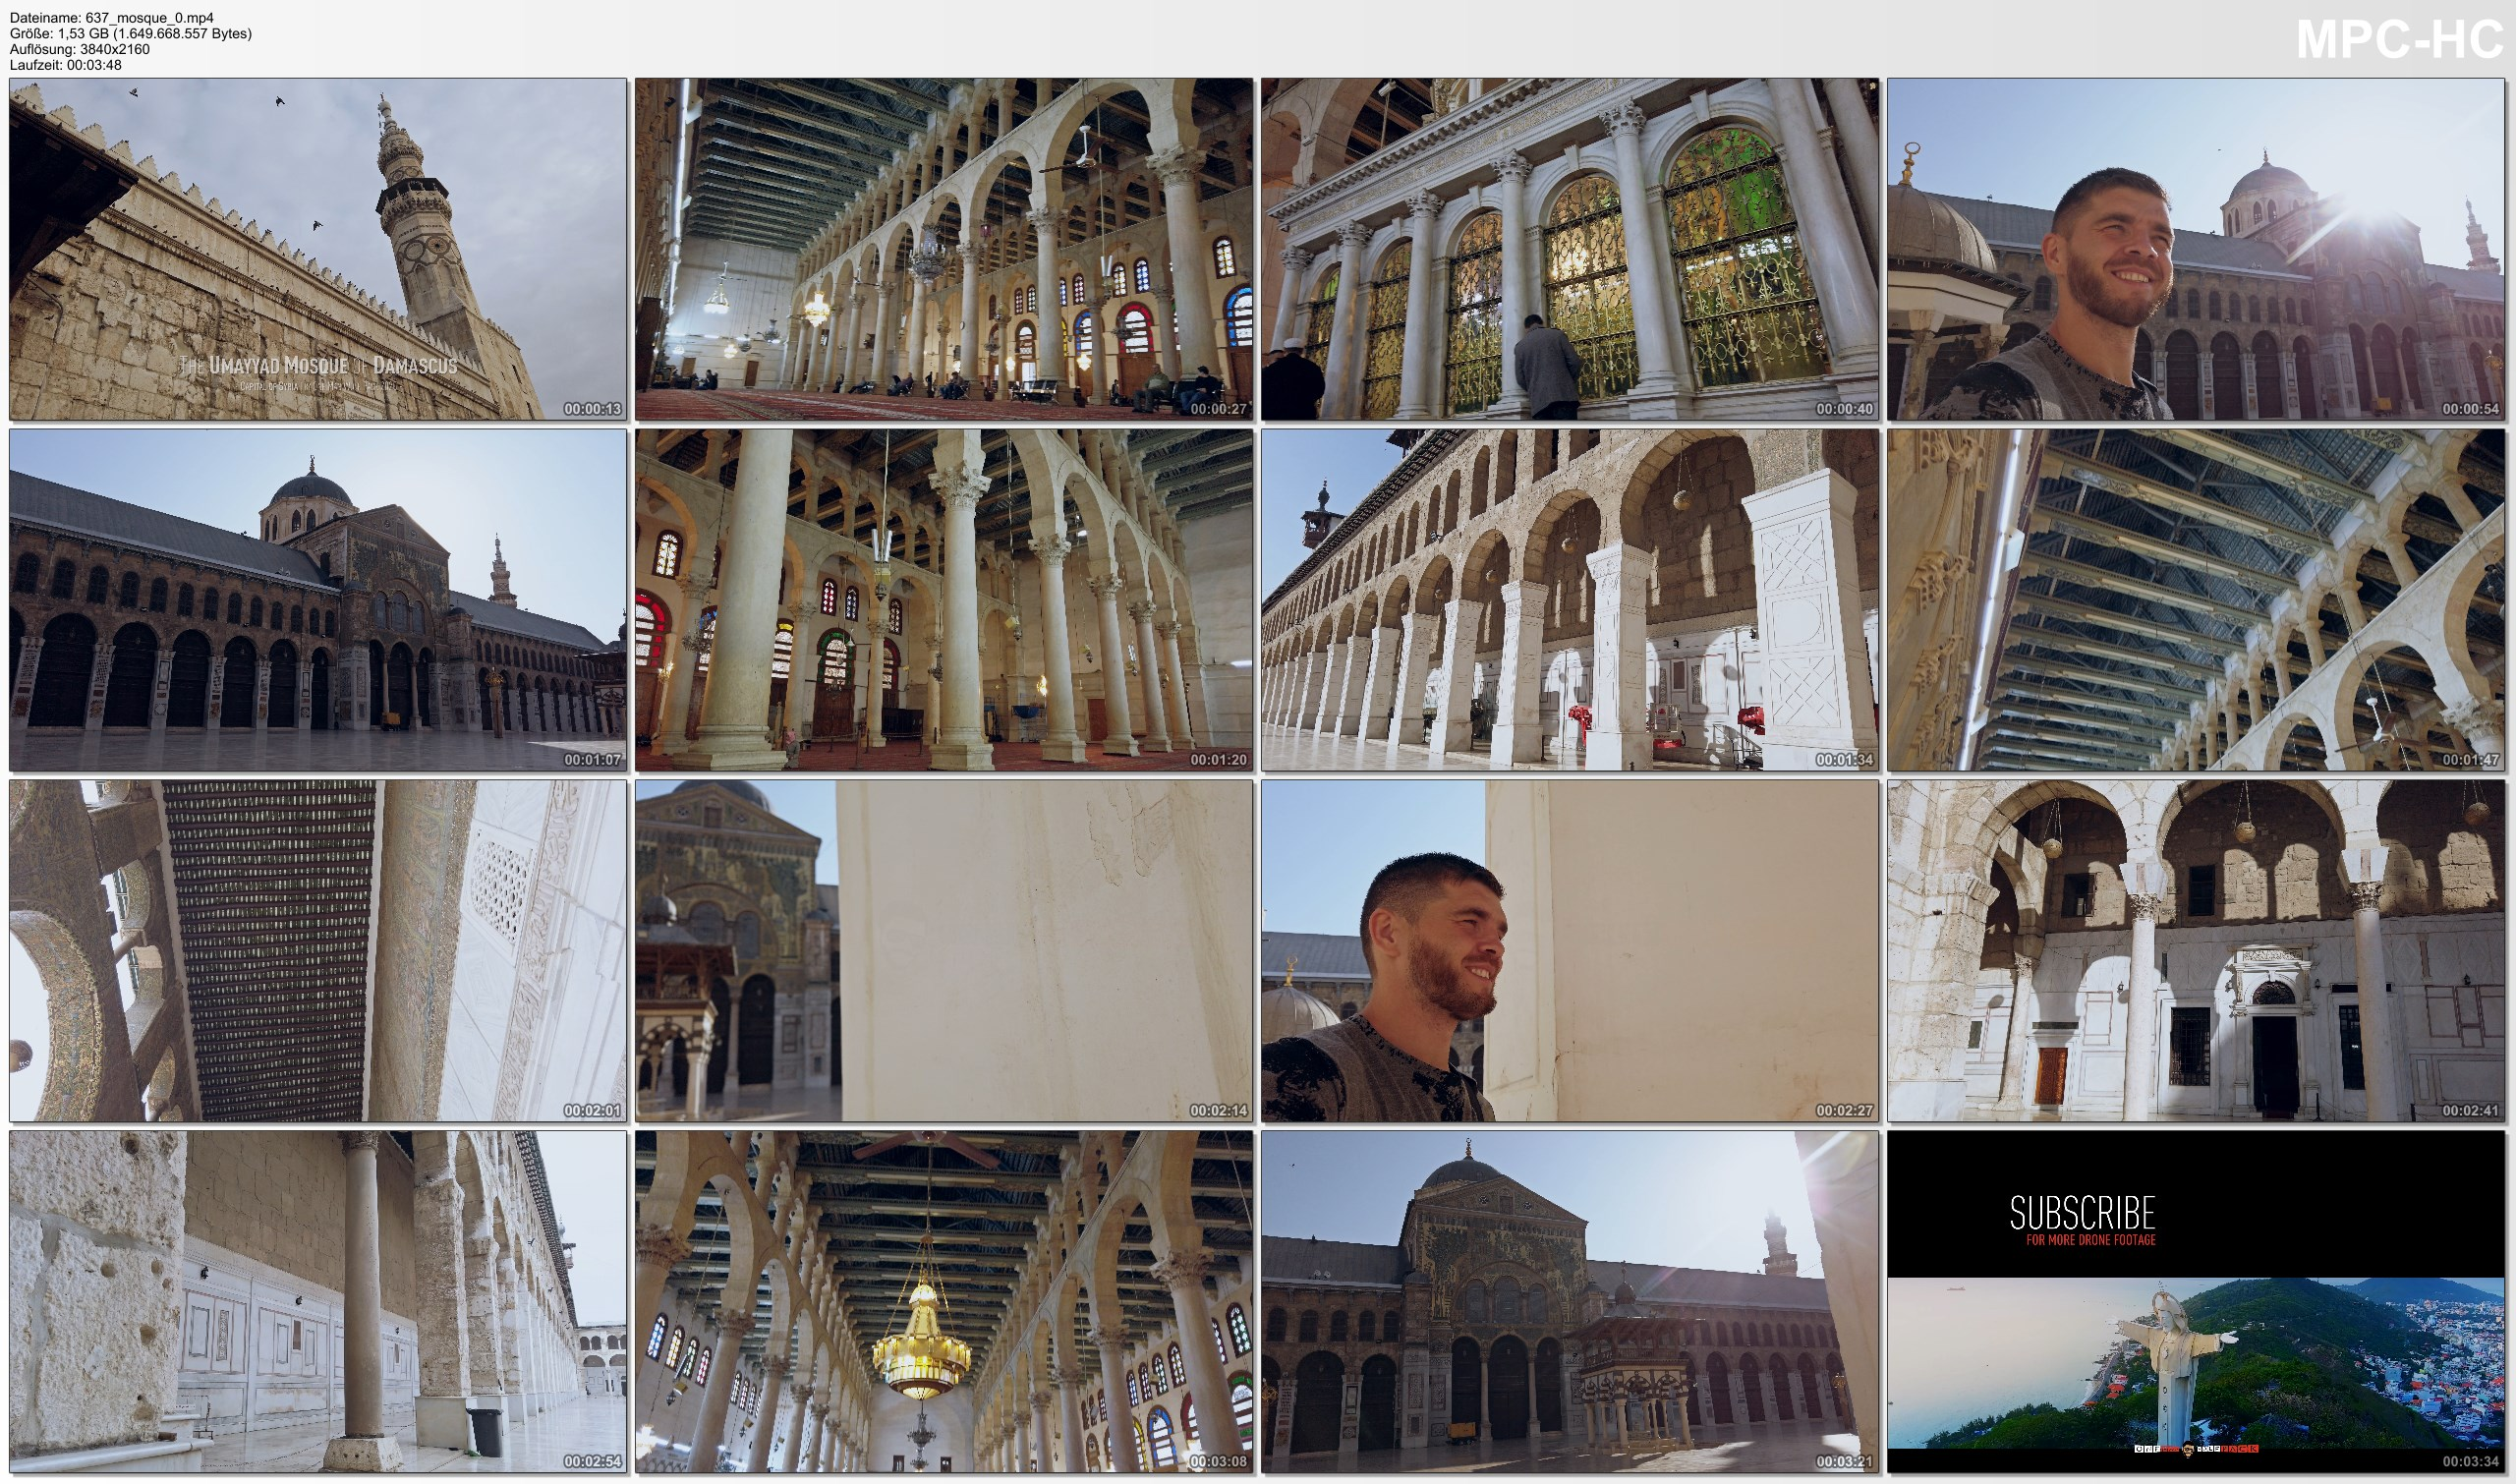 Pictures from Video 【4K】The Great Mosque of Damascus - SYRIA 2020 | Umayyad Mosque الجامع الأموي